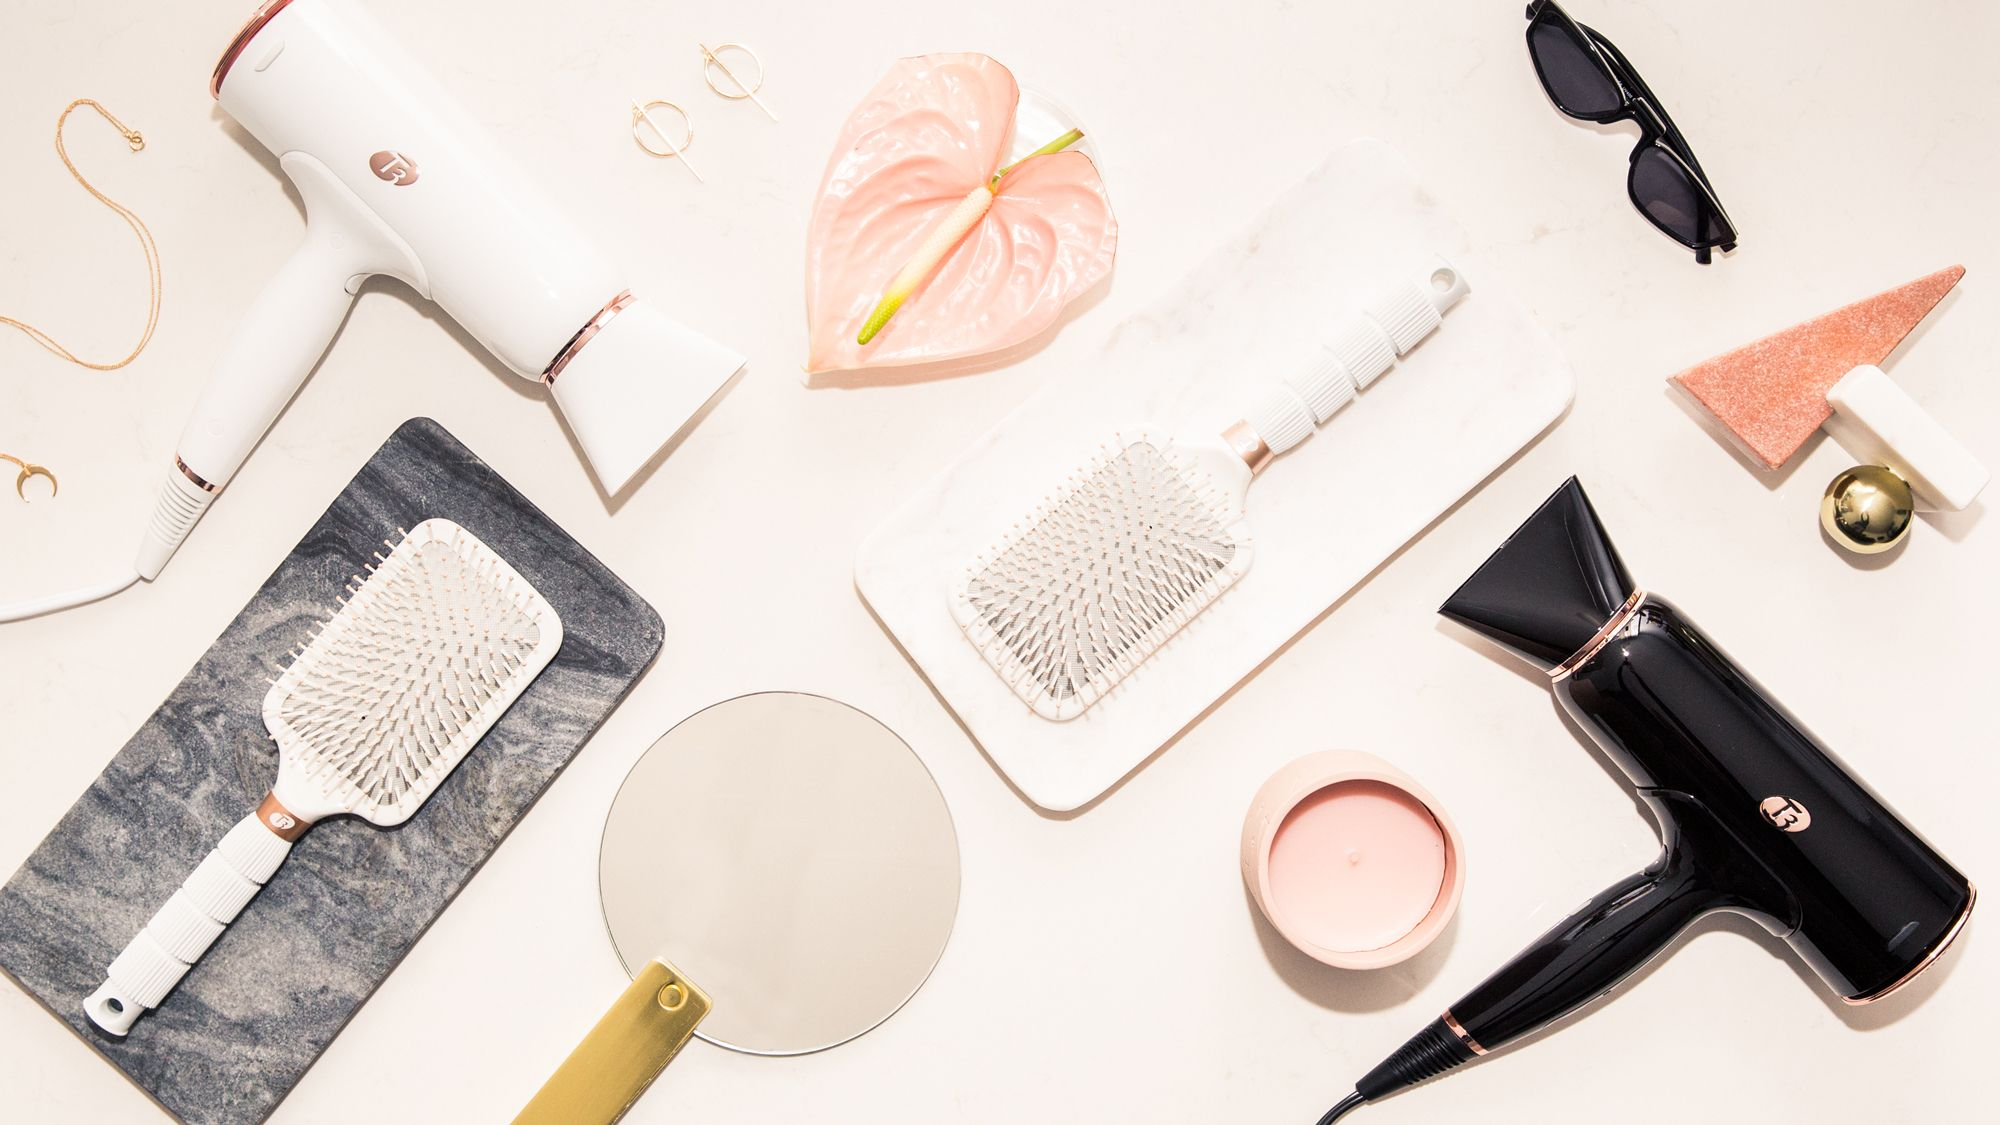 skin and hair beauty tools